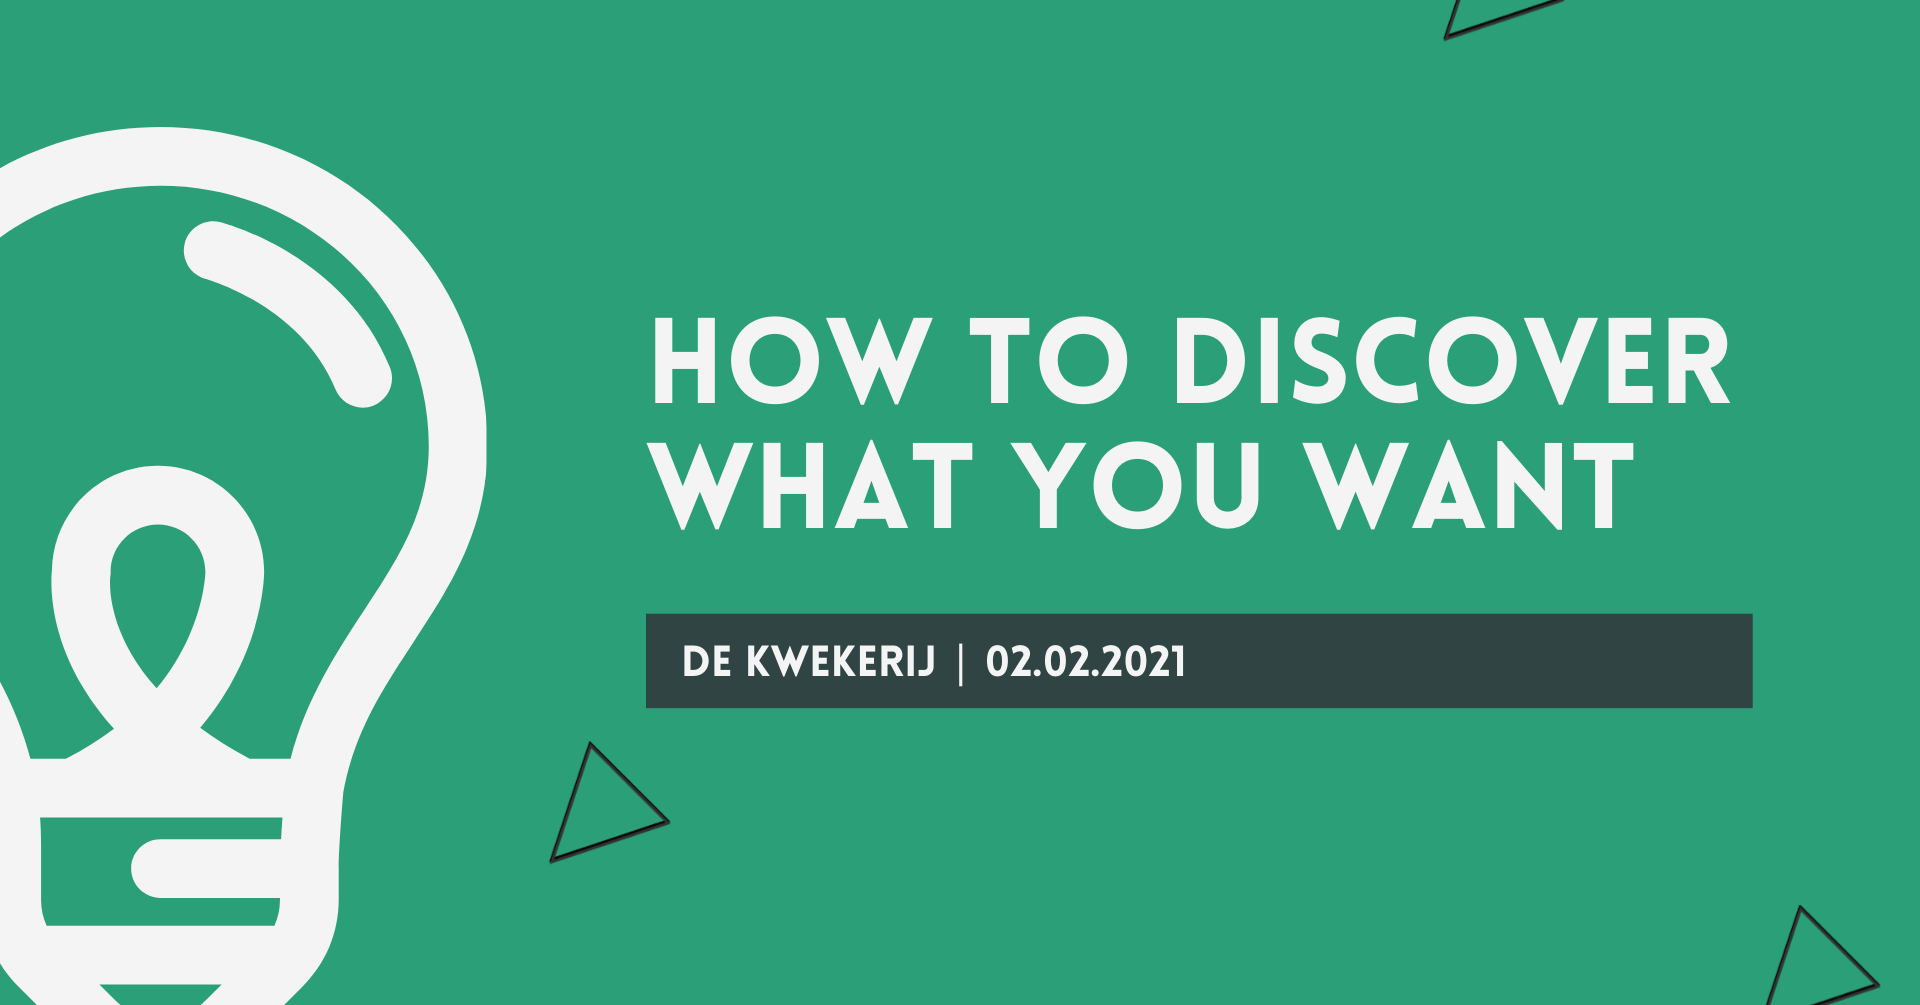 How to discover what you want